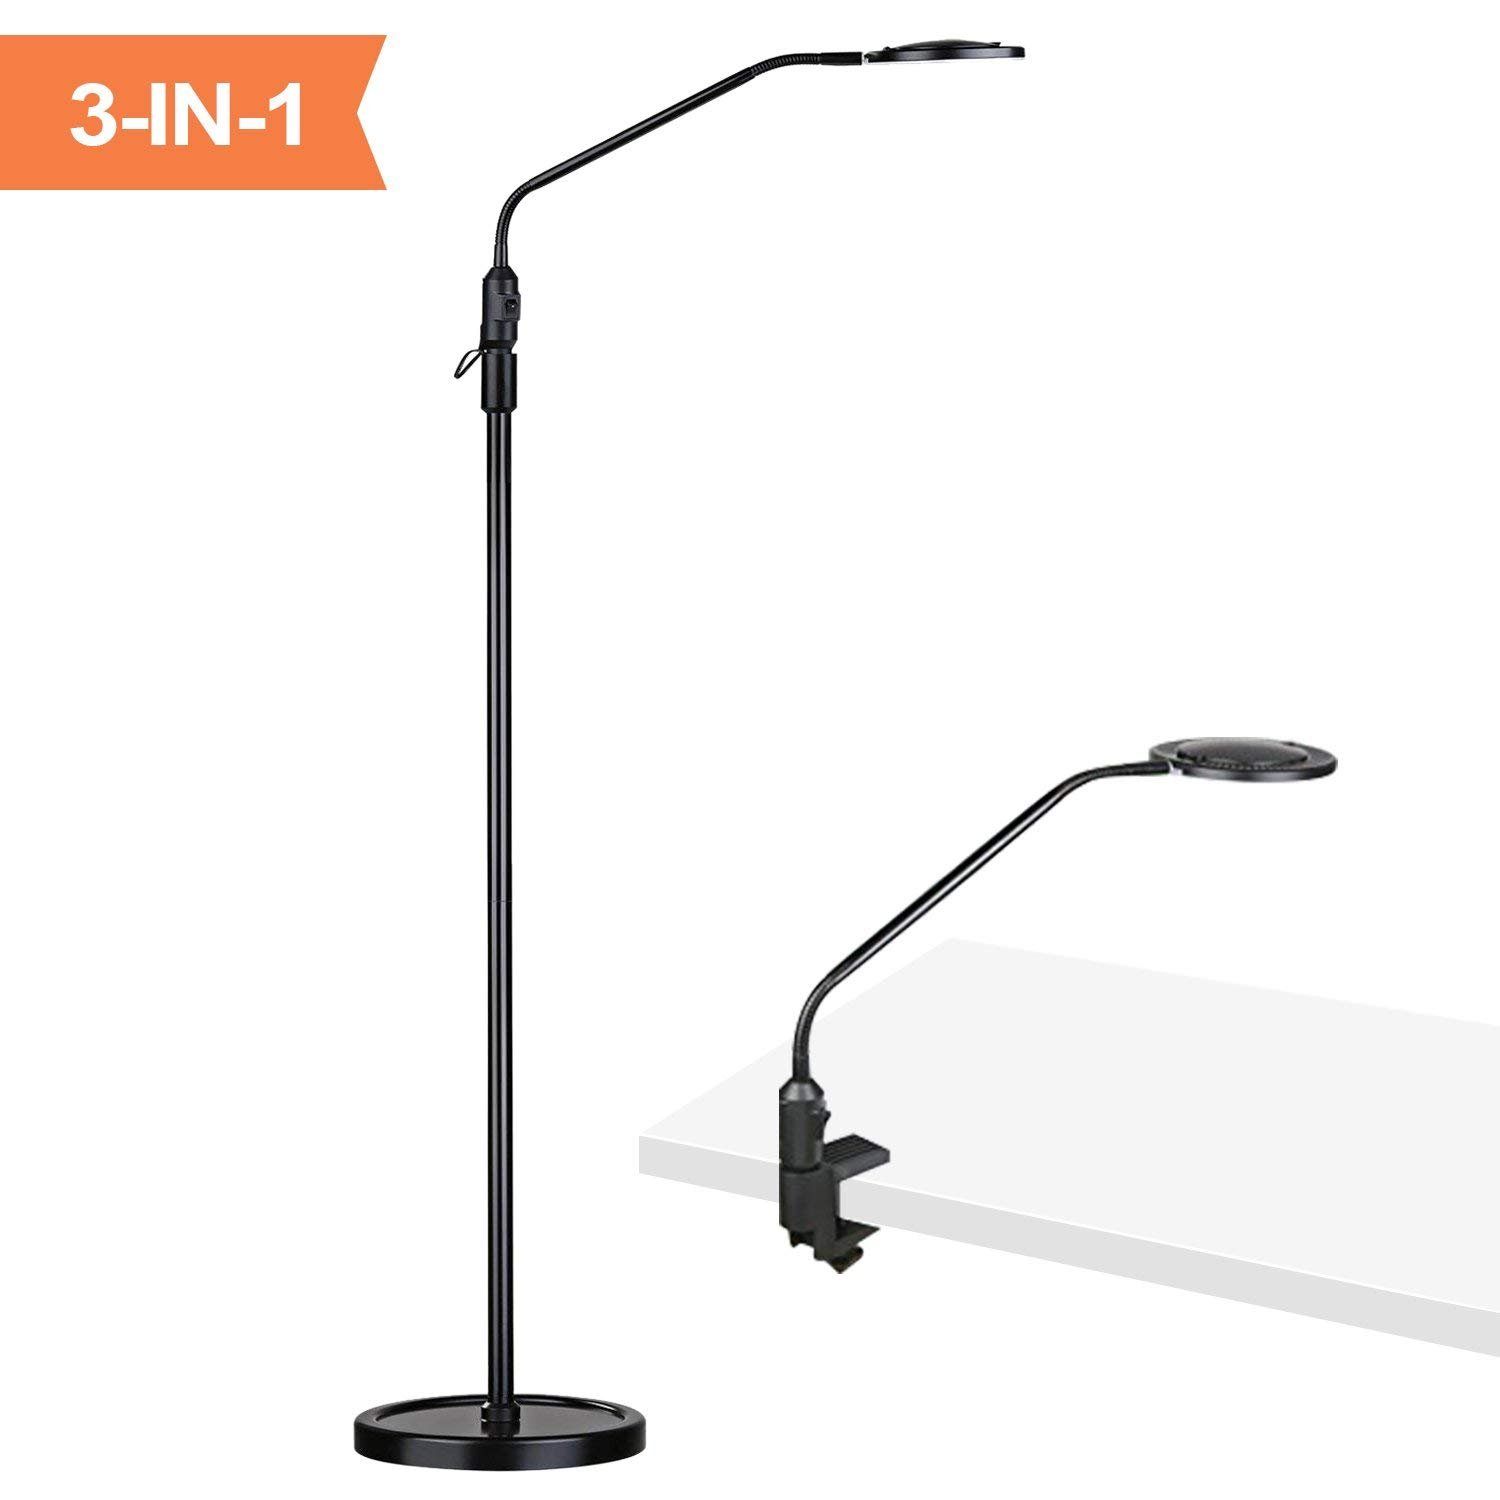 Aglaia Floor Lamp, Desk Lamp, 3 in 1 Craft Floor Lamp, 4X Facial Magnifier Light with Bright LED, Magnifying Floor Lamp for Living Room Bedroom Office Task